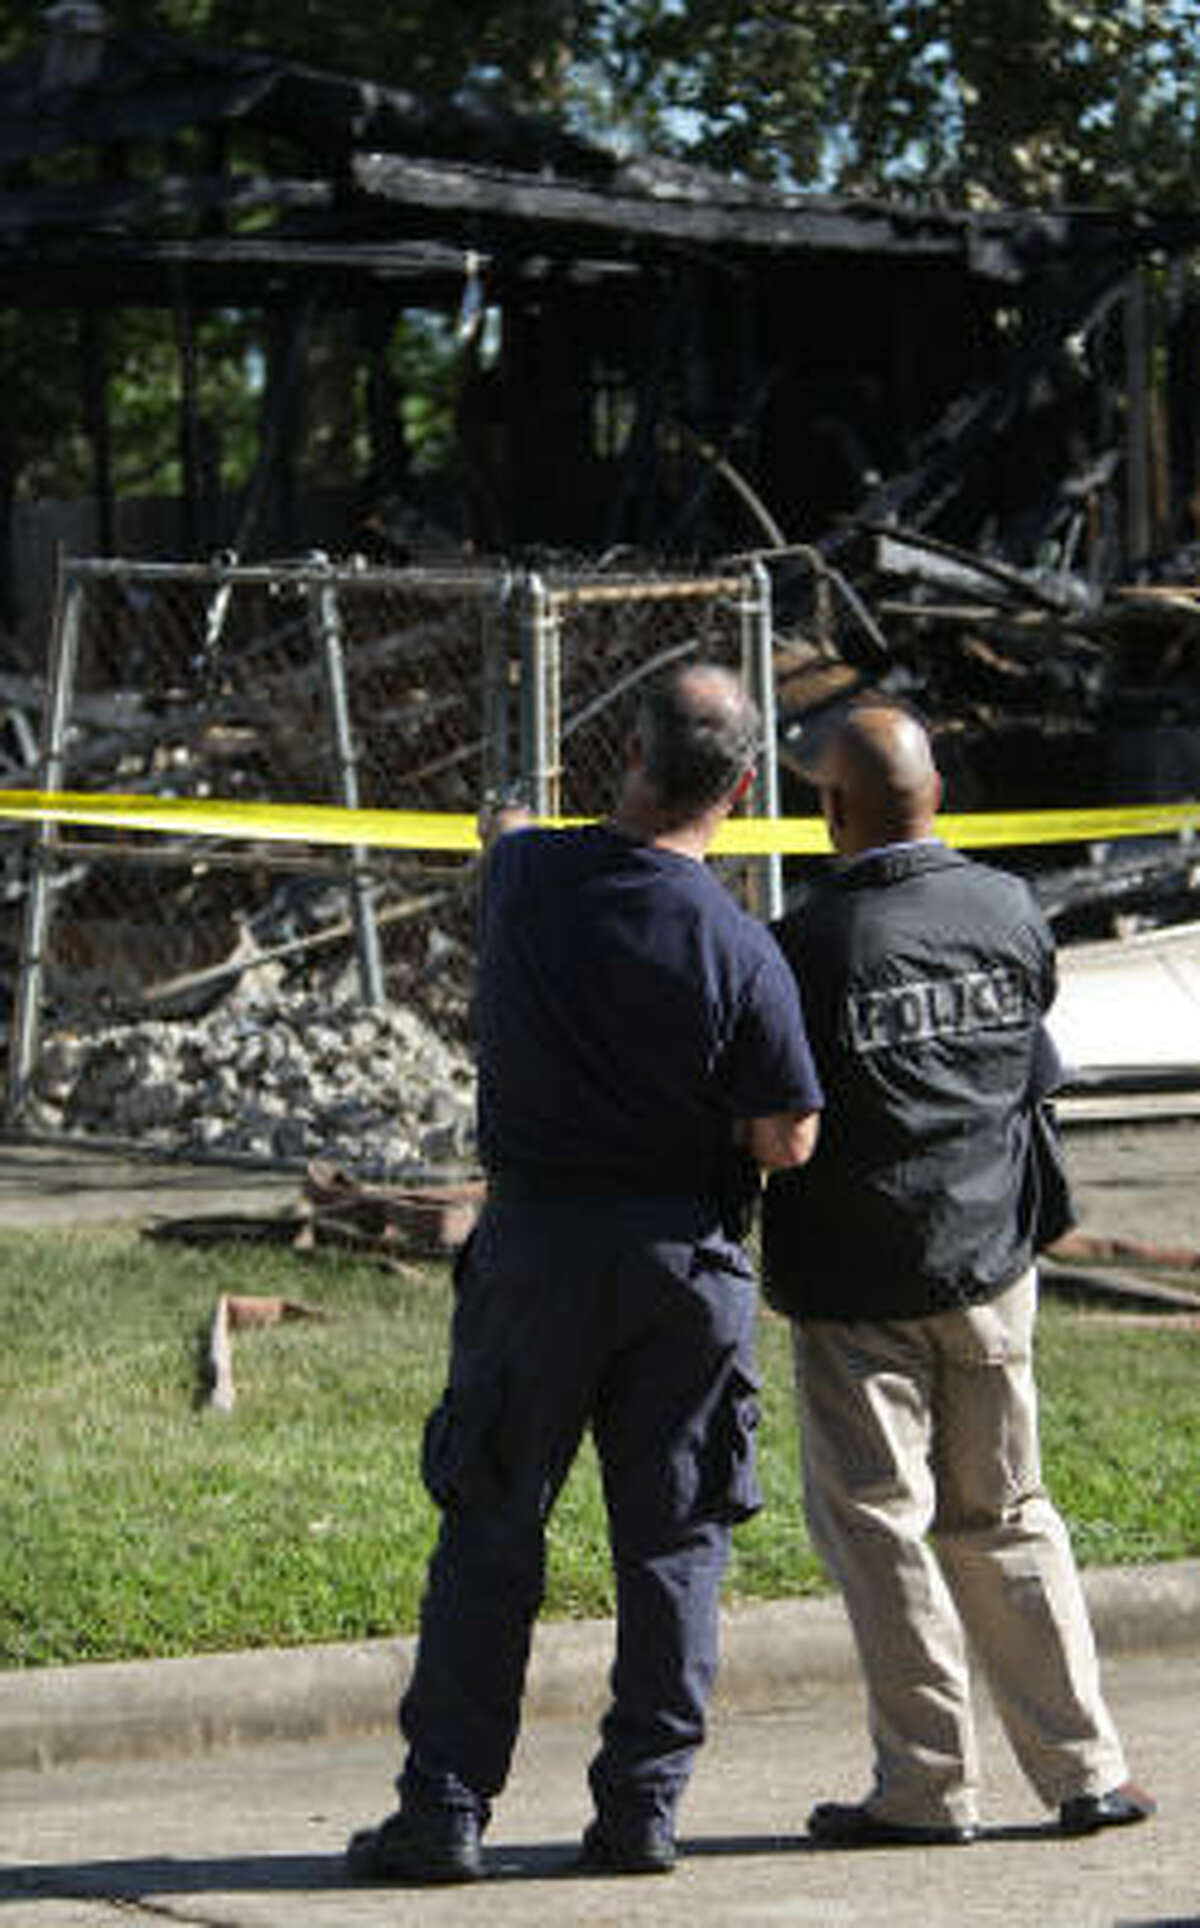 Officials look on as members of the Methamphetamine Initiative Group sift through the debris of a garage at 10711 Donegal Way, that caught on fire, late last night, as they look for evidence, Wednesday, Sept. 29, 2010, in Houston.